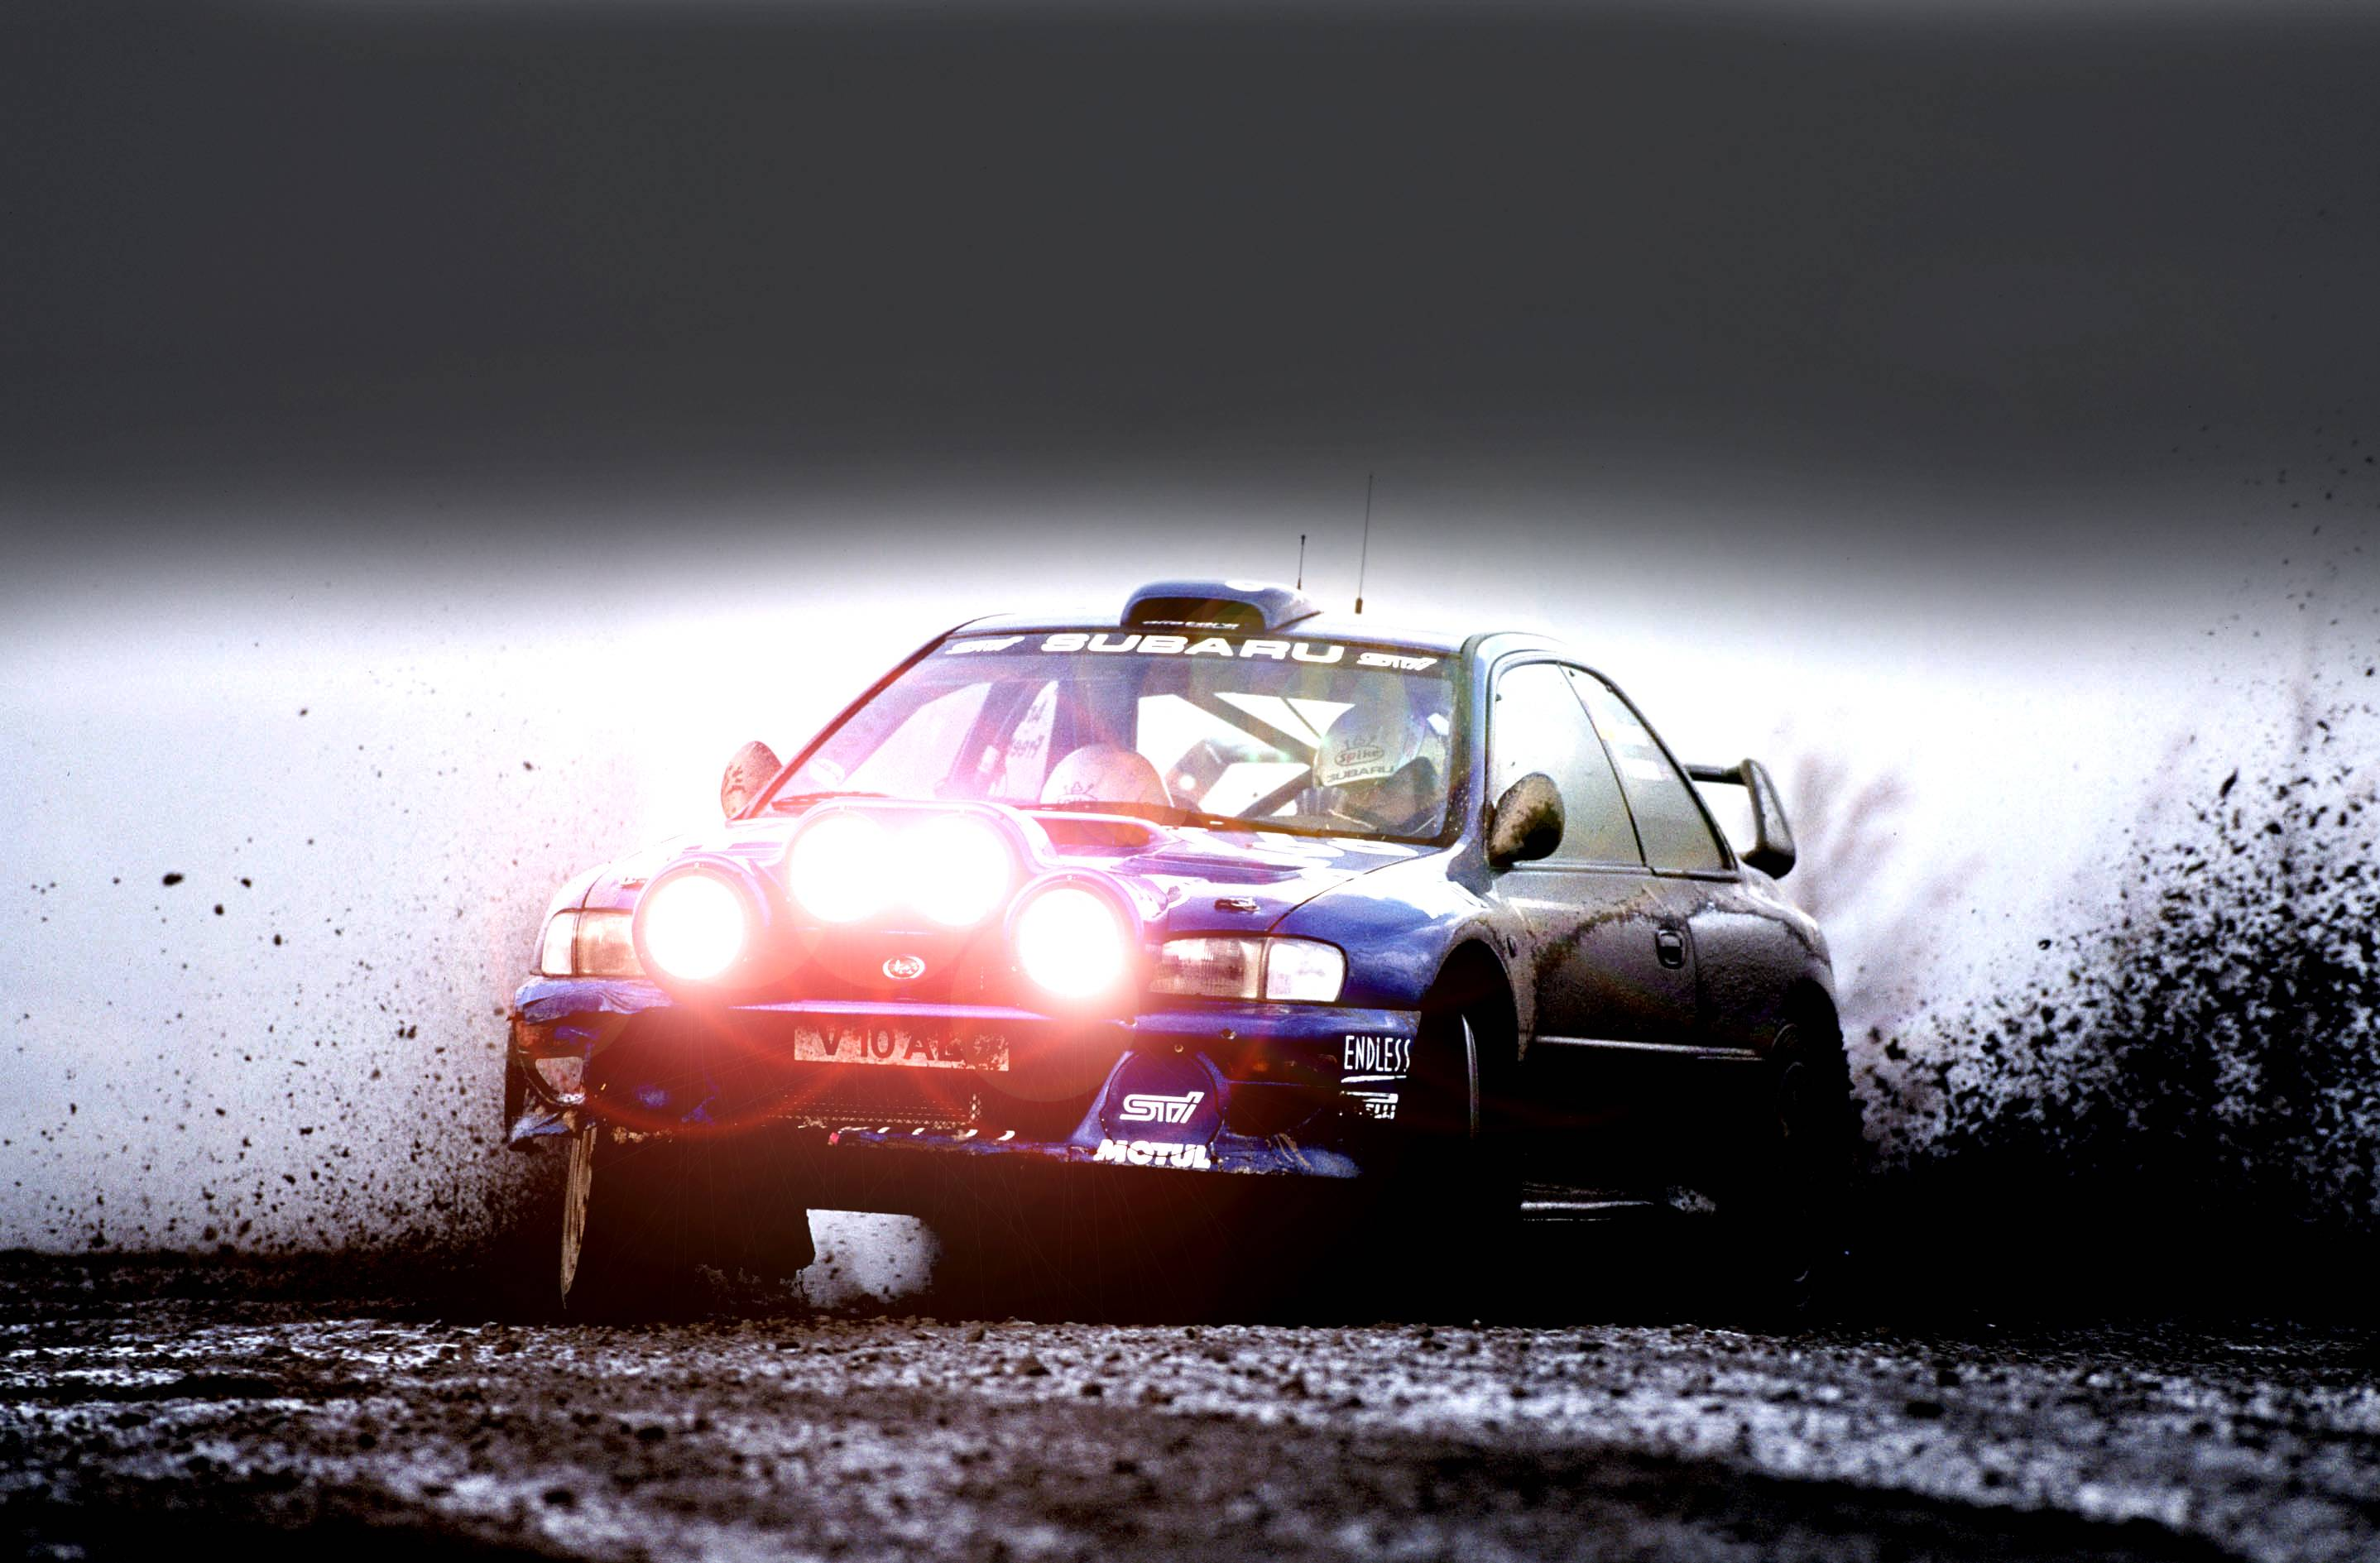 Hd Jdm Car Wallpapers Wrc Wallpapers Hd Wallpaper Cave